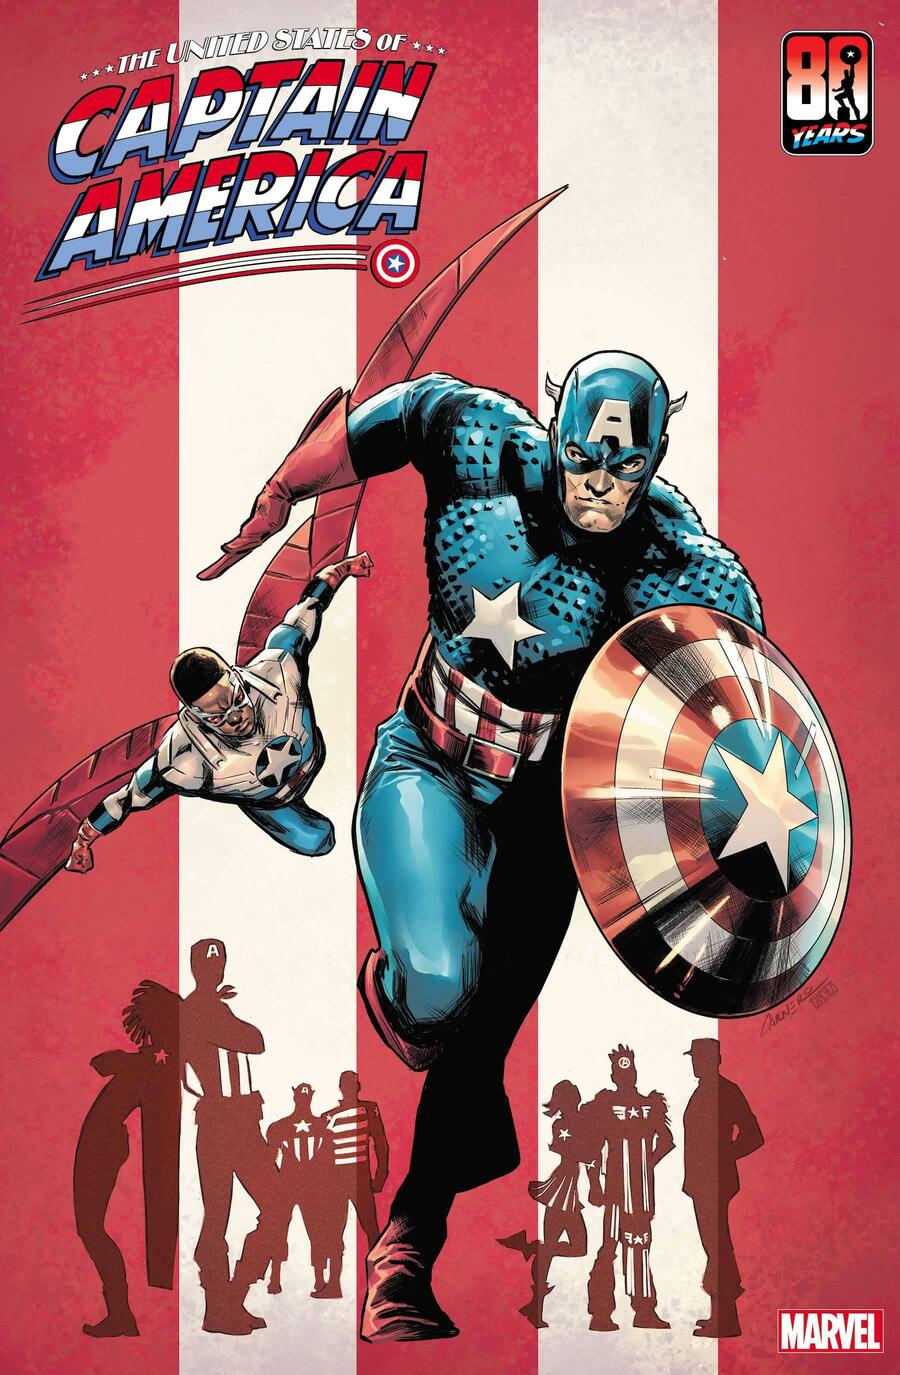 THE UNITED STATES OF CAPTAIN AMERICA #1 variant cover by Carmen Carnero